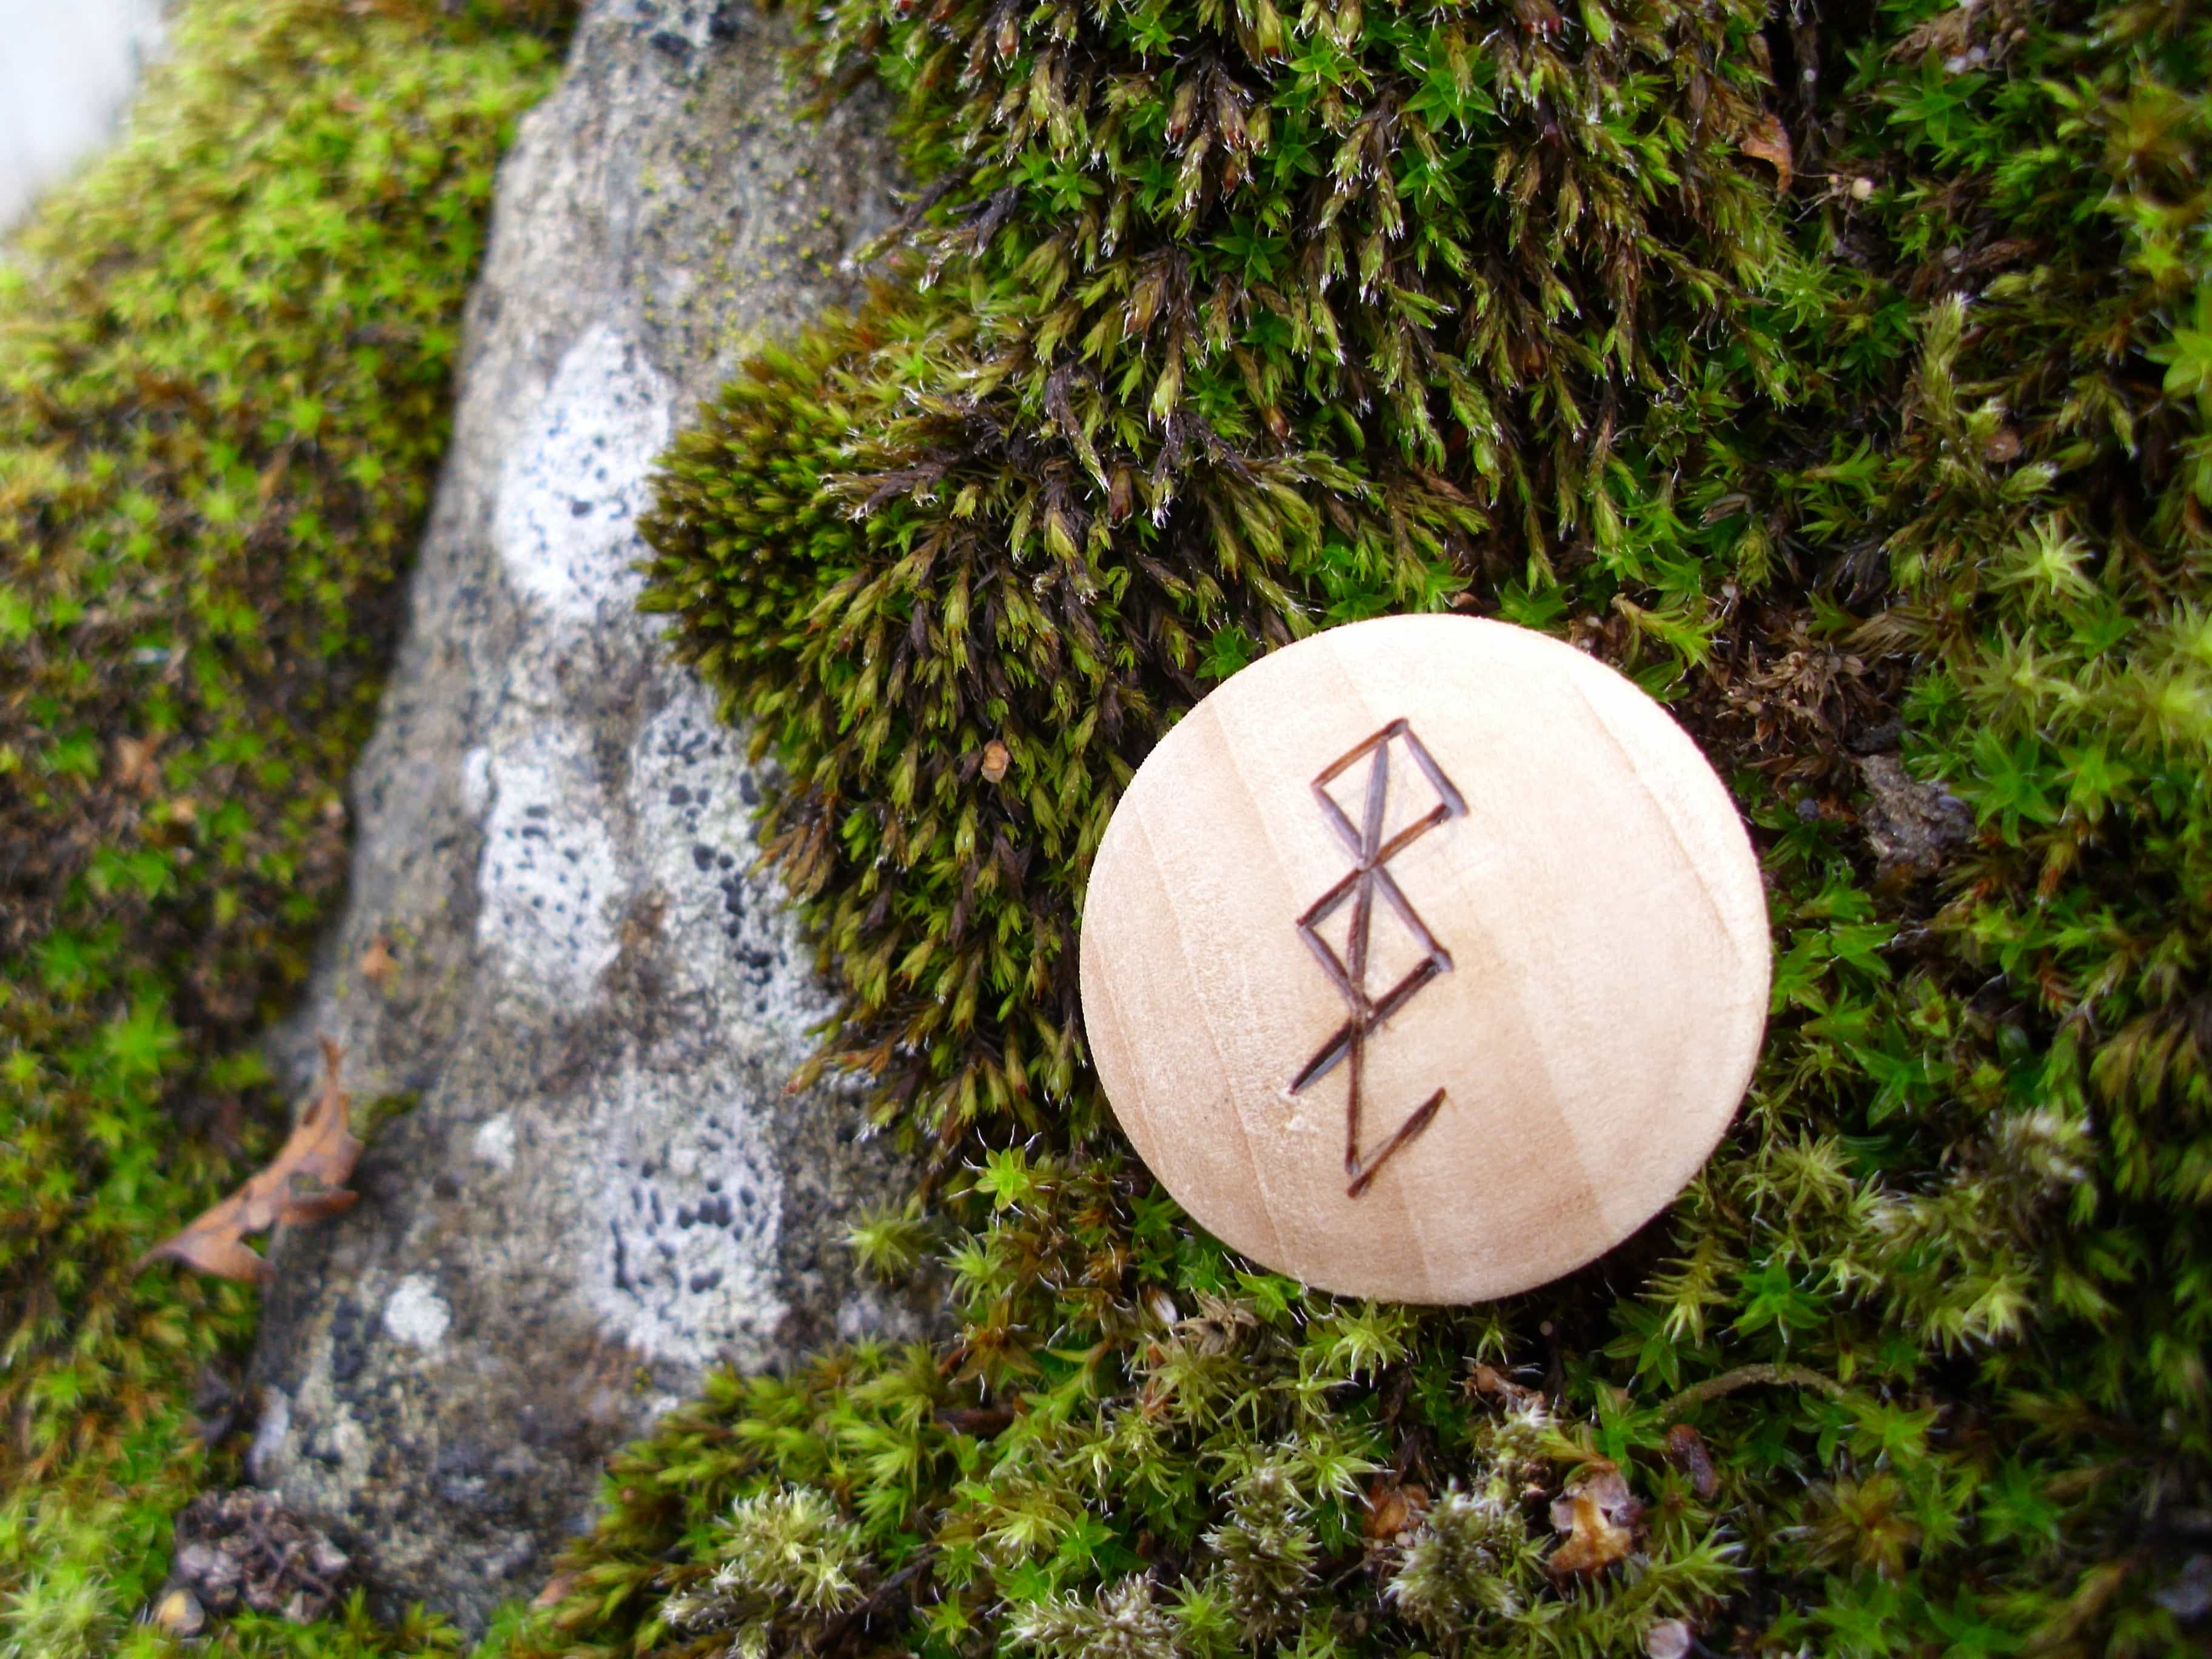 Pocket Rune for Computer Protection - Wooden Rune Amulet -Beskyttelse for datamaskin